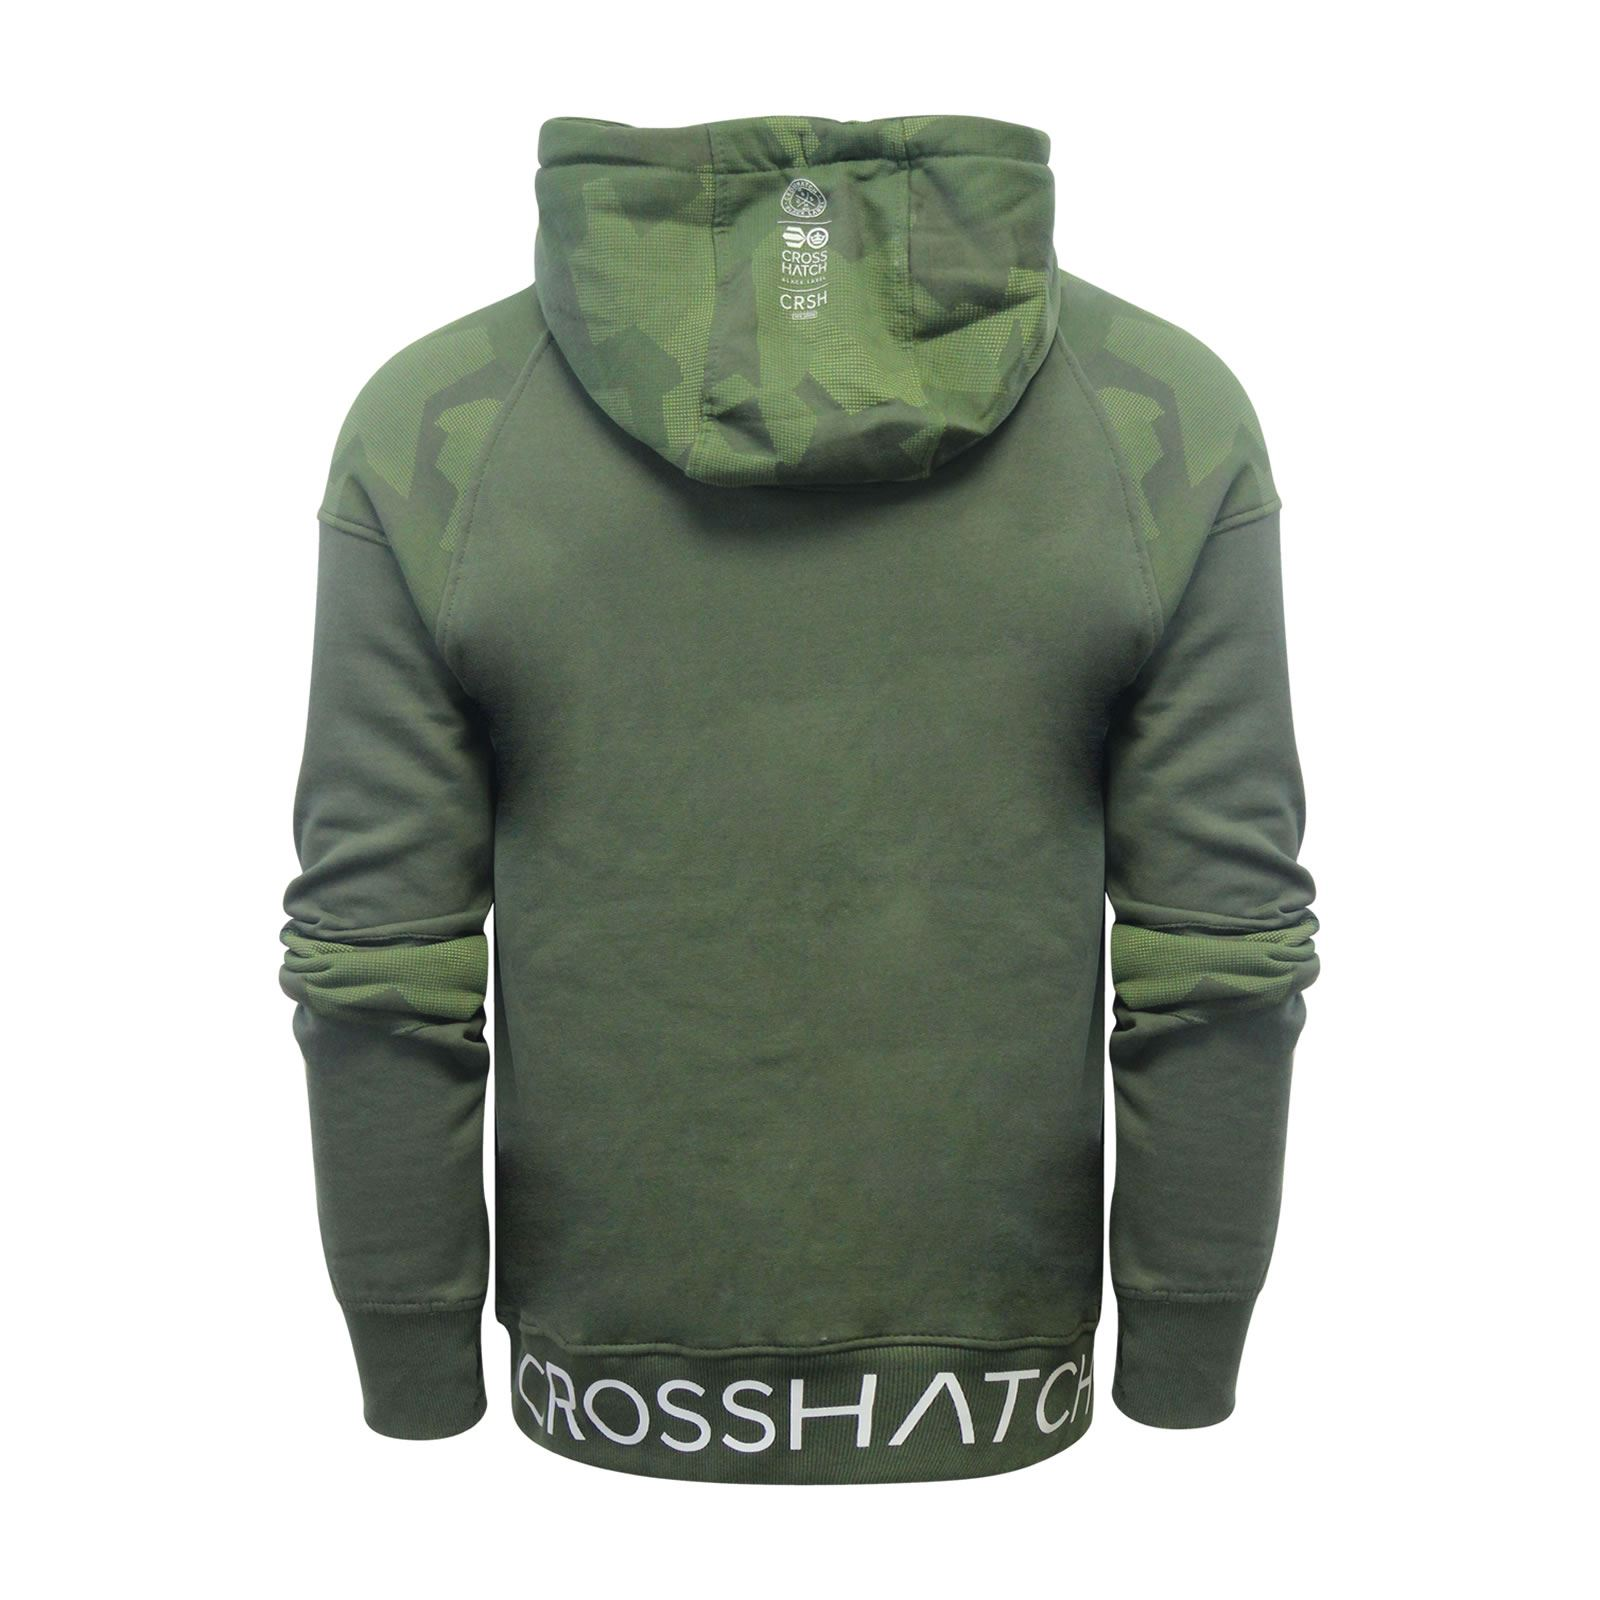 Crosshatch-Quirn-Mens-Hoodie-Cotton-Hooded-Pull-Over-Sweater thumbnail 3